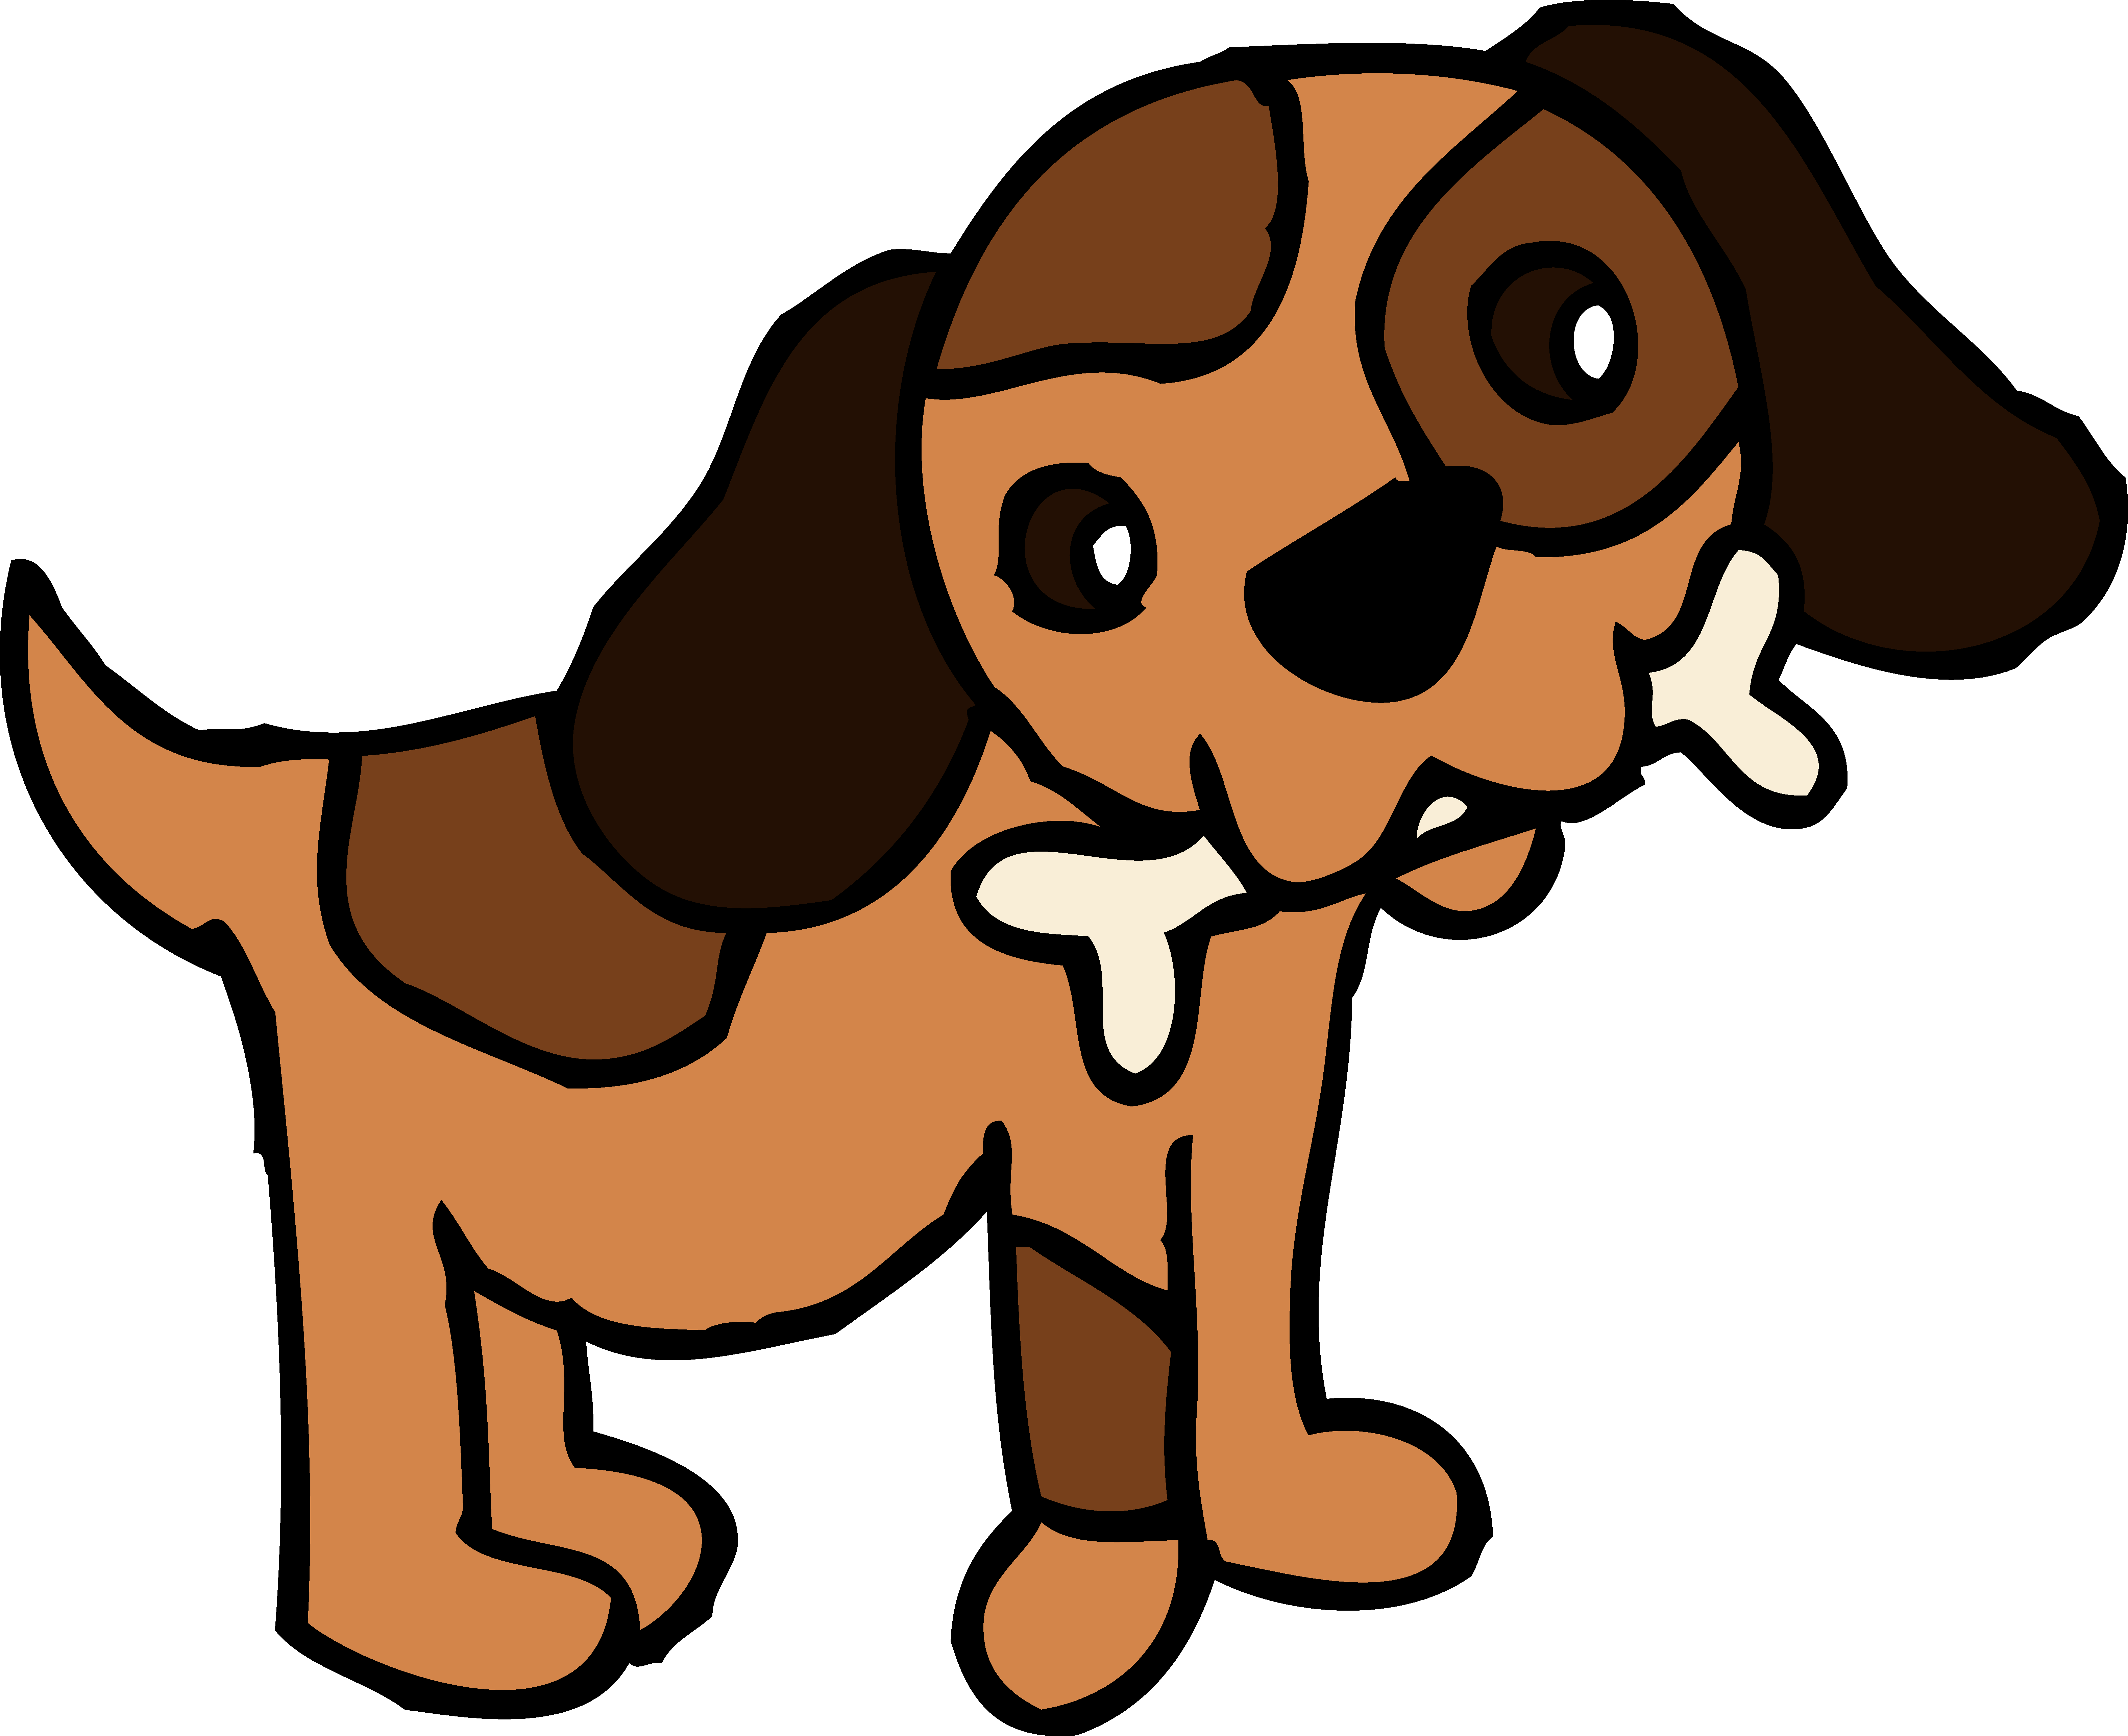 Dog with bone clipart image royalty free Big Dog Clip Art - ClipArt Best image royalty free